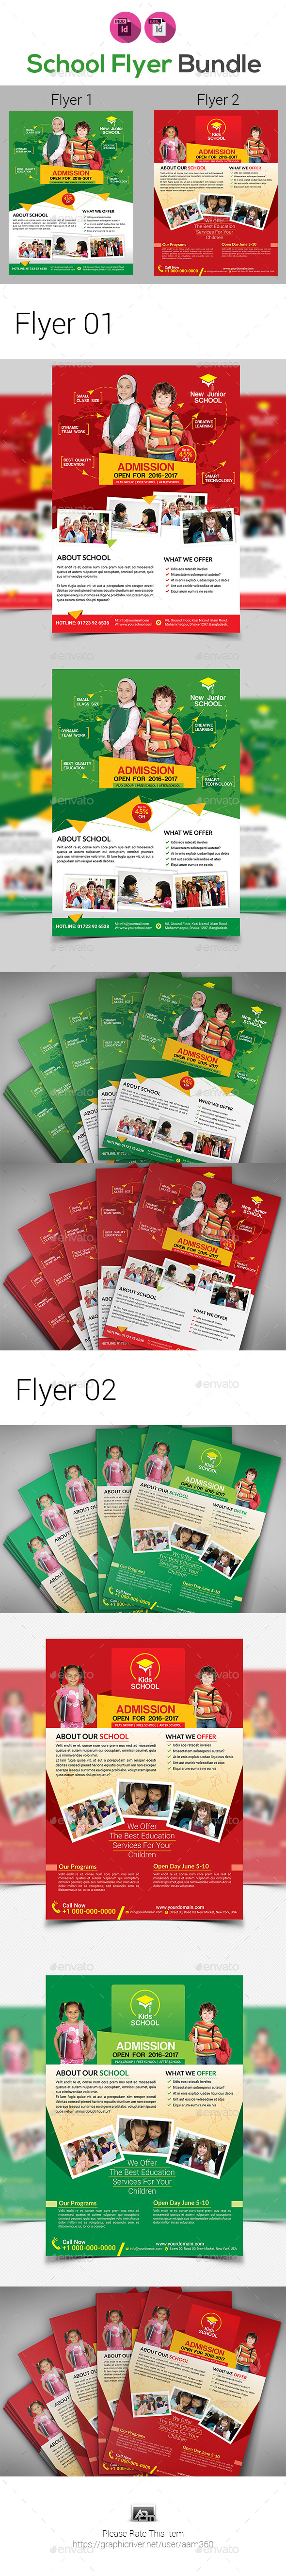 School Flyer Bundle Template - Corporate Flyers